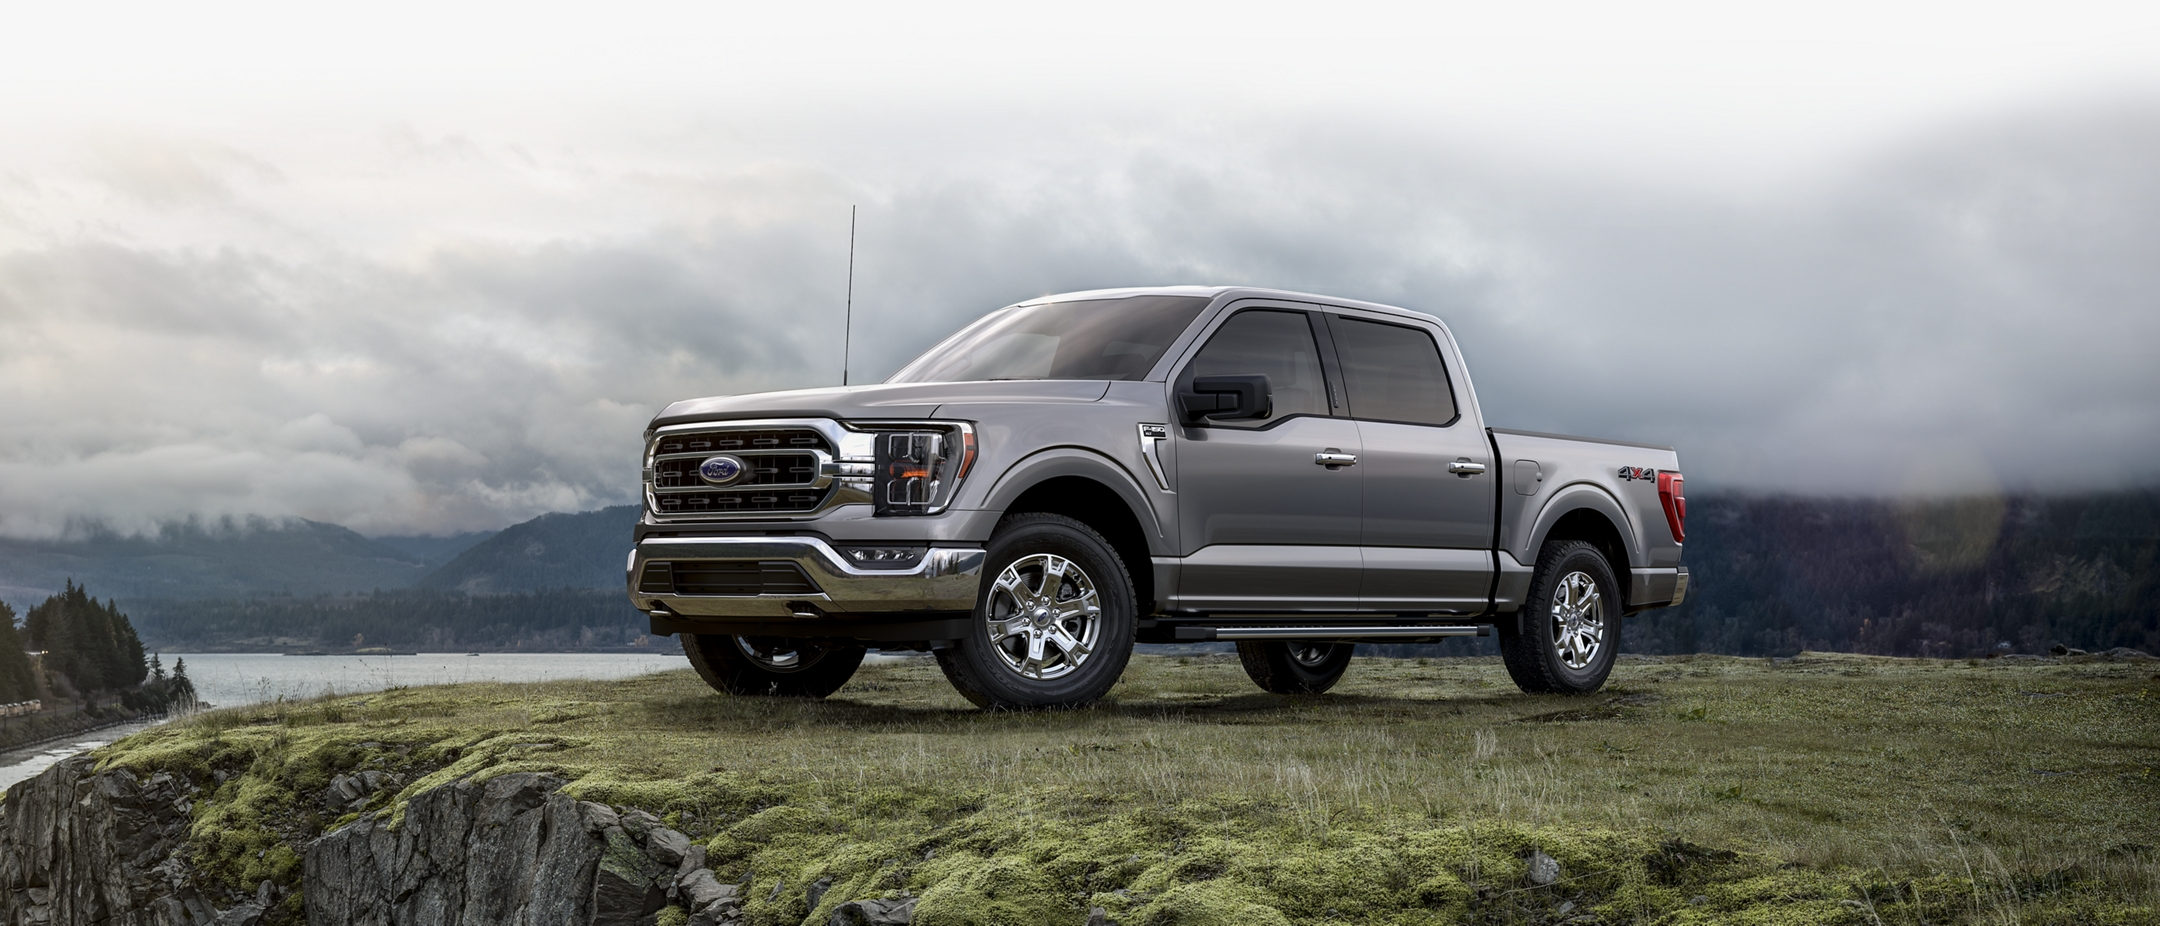 The Redesigned 2021 F-150 Pickup: A First Look - Autoversed